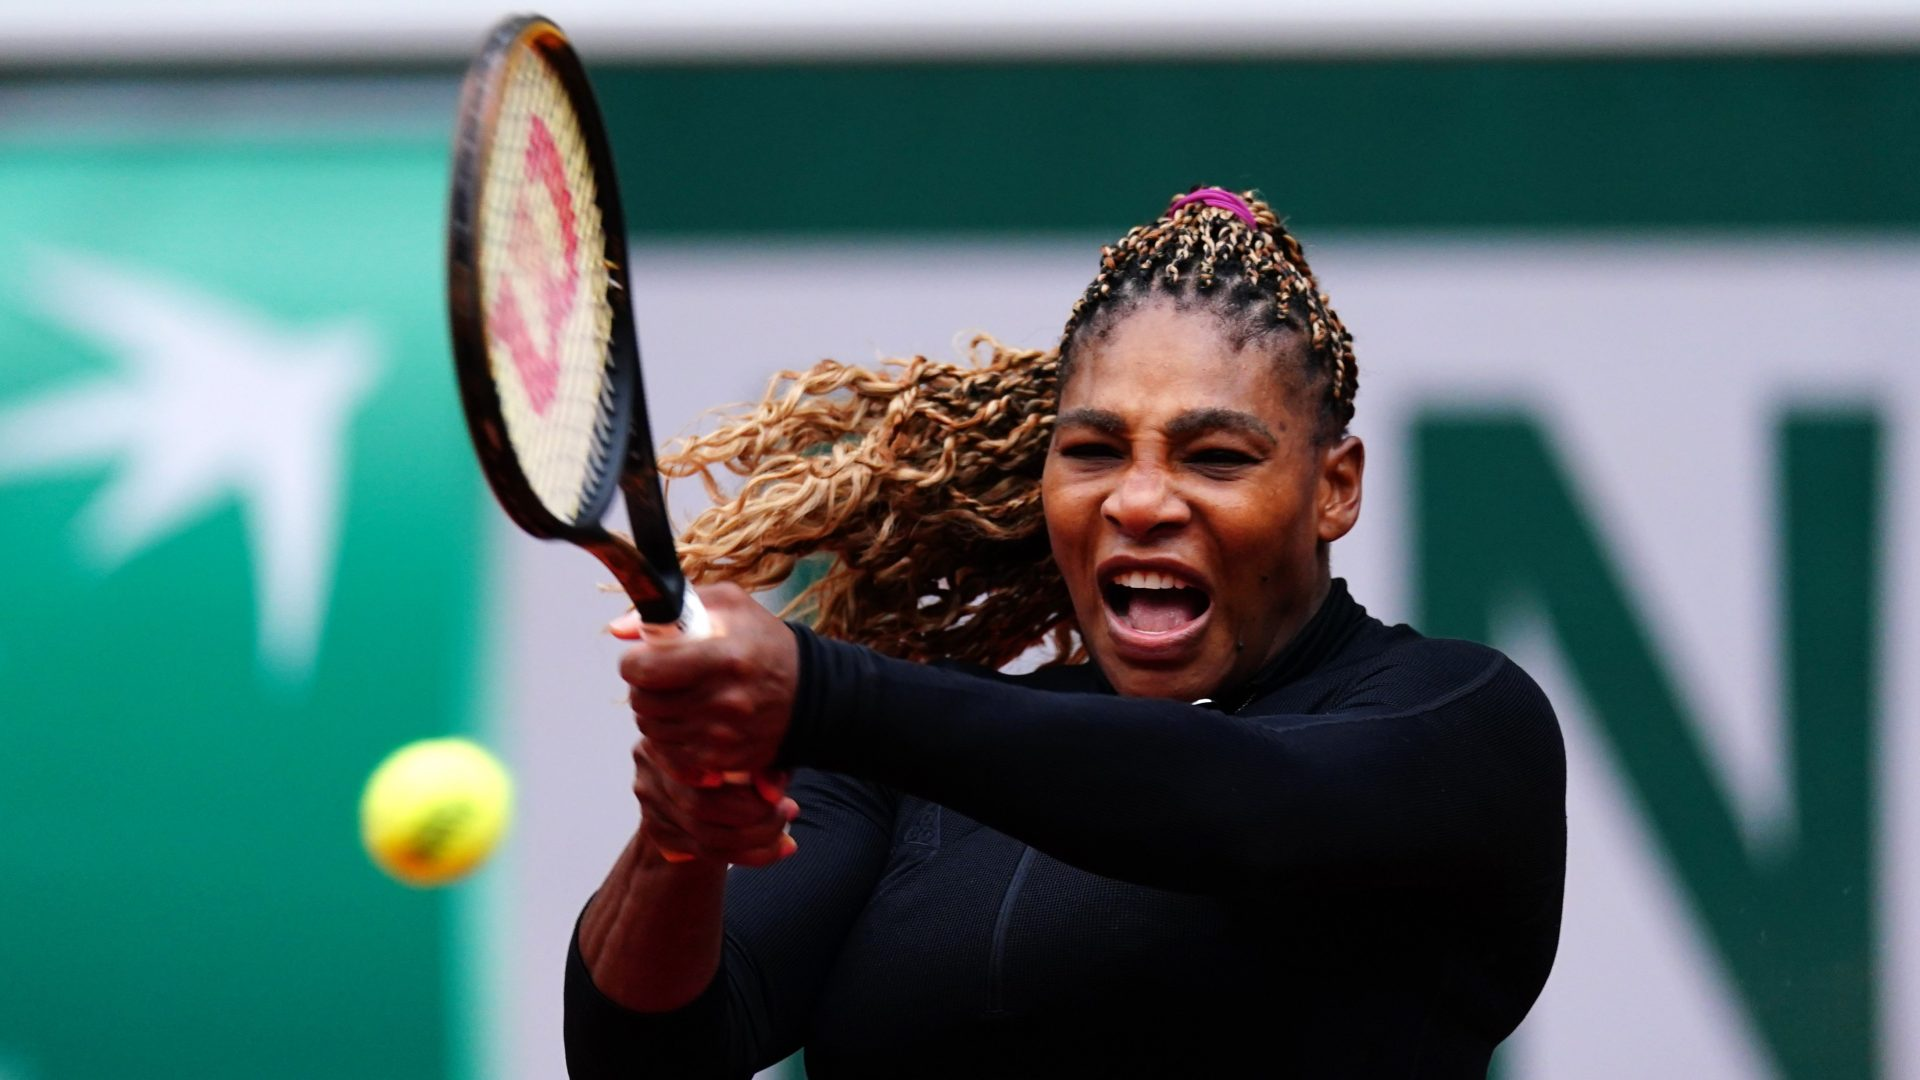 Mandatory Credit: Photo by Javier Garcia/BPI/Shutterstock (10792638fb)Serena Williams during her Women's Singles first round matchFrench Open Tennis, Day Two, Roland Garros, Paris, France - 28 Sep 2020.